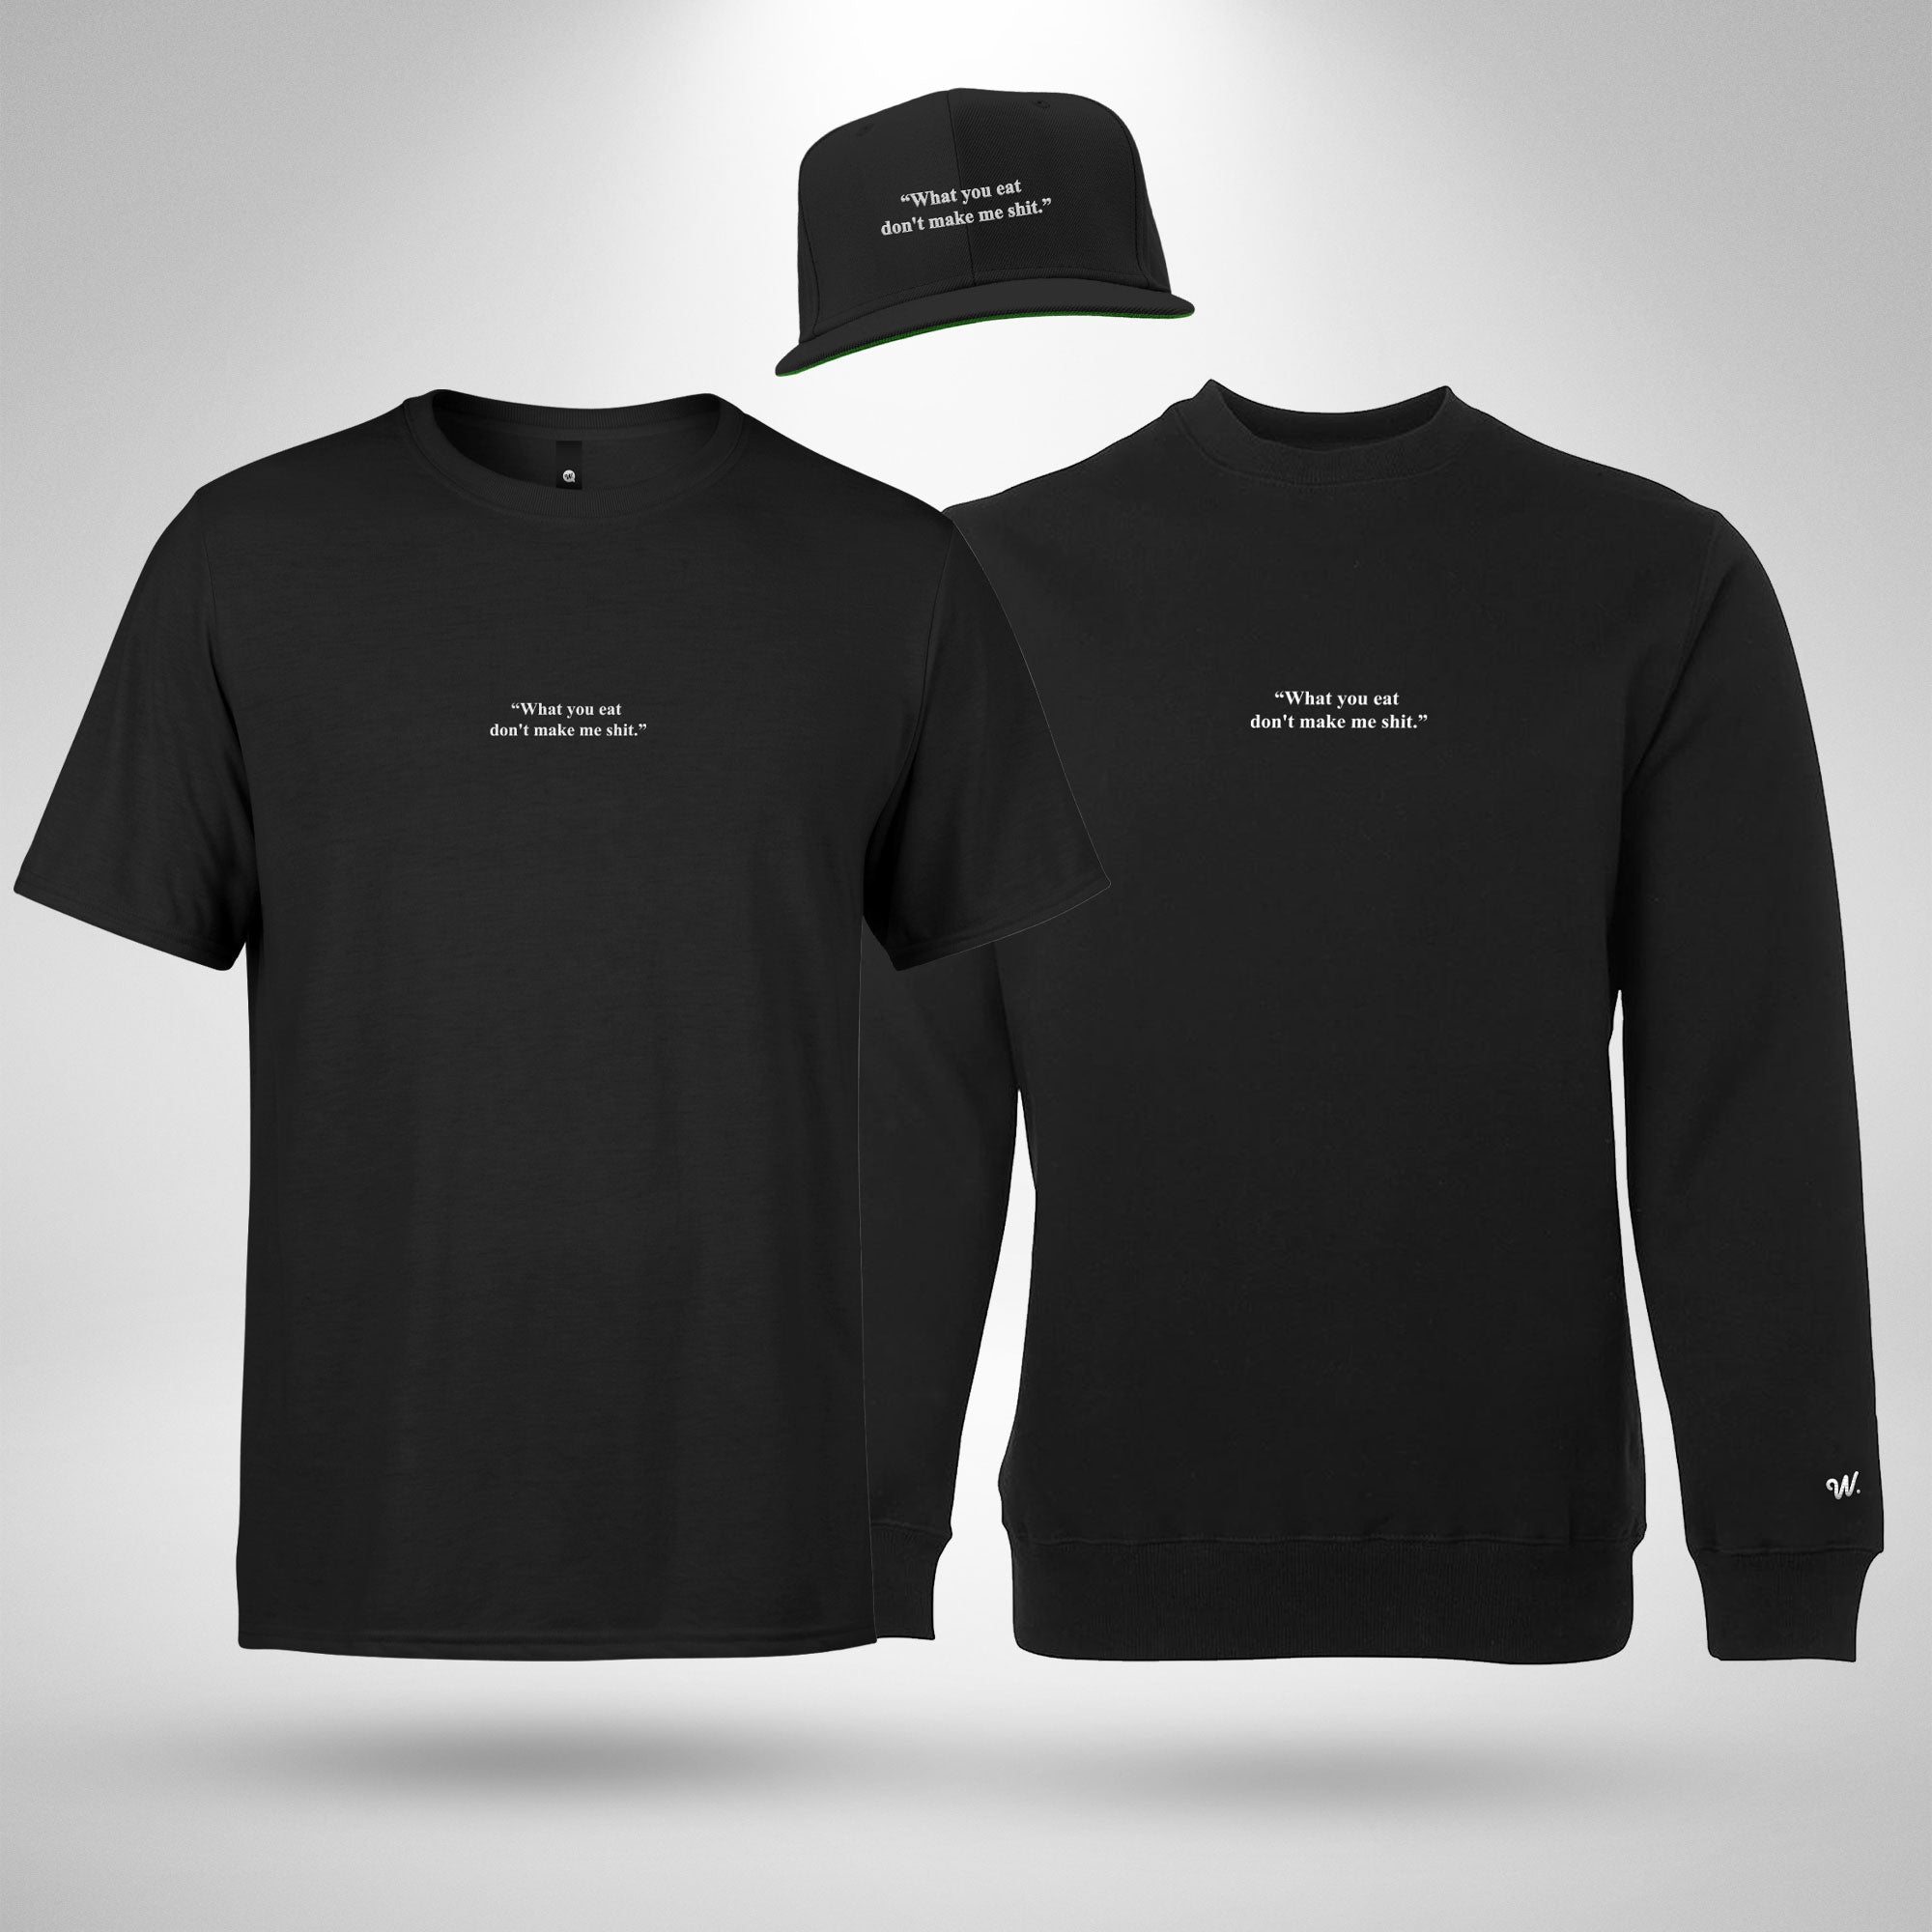 Food Crewneck Sweatshirt, Tee & Cap Bundle